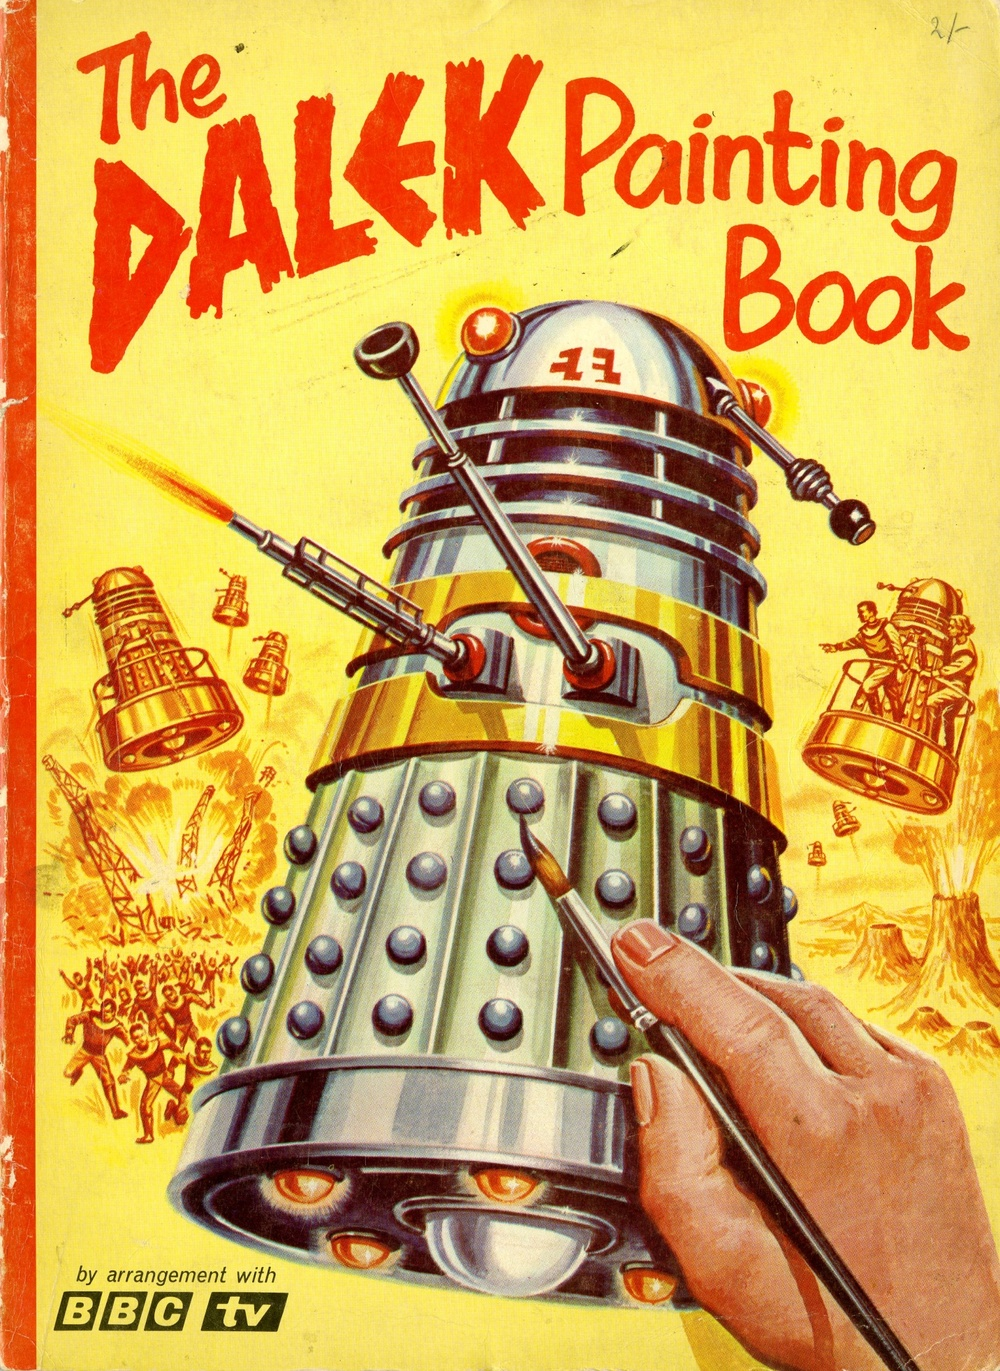 Souvenir Press in association with Panther Books Ltd., The Dalek Painting Book